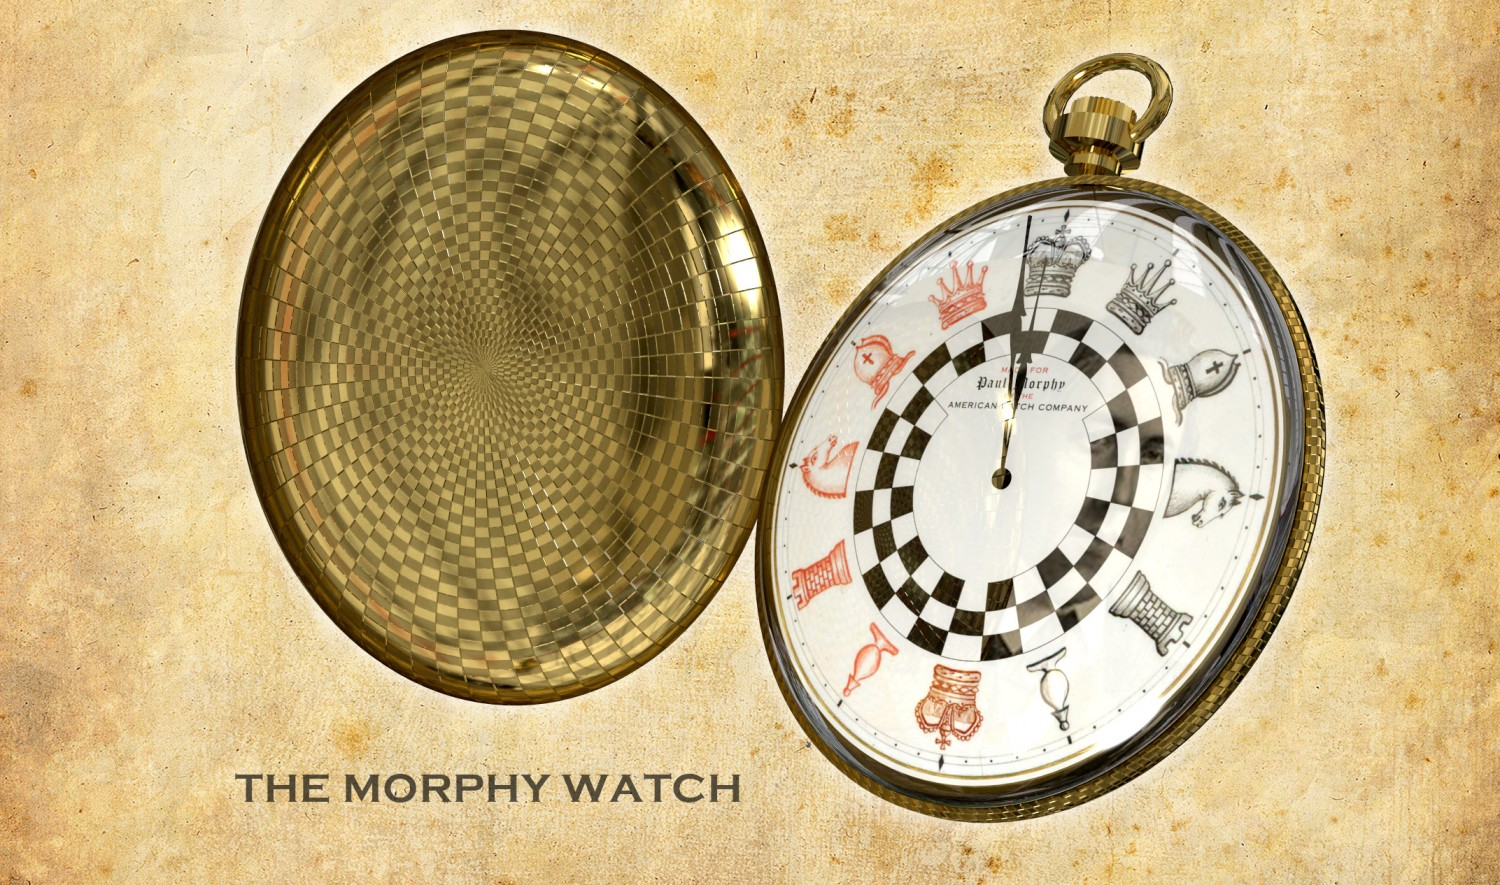 Morphy Watch - Solo